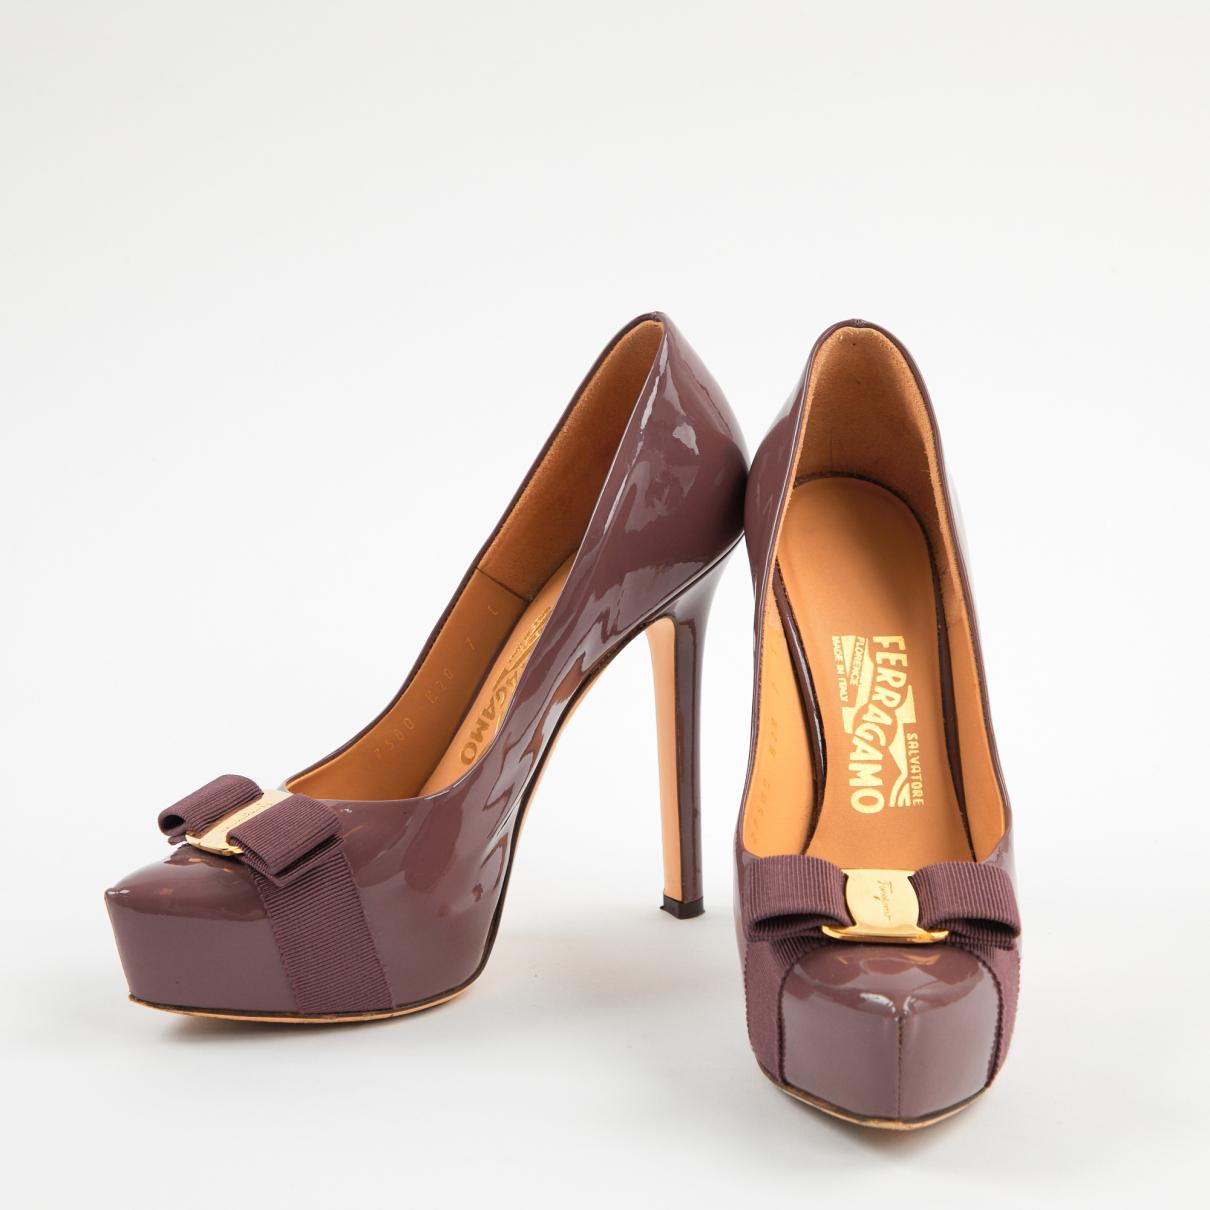 3045d84ad18a Ferragamo - Purple Patent Leather Heels - Lyst. View fullscreen